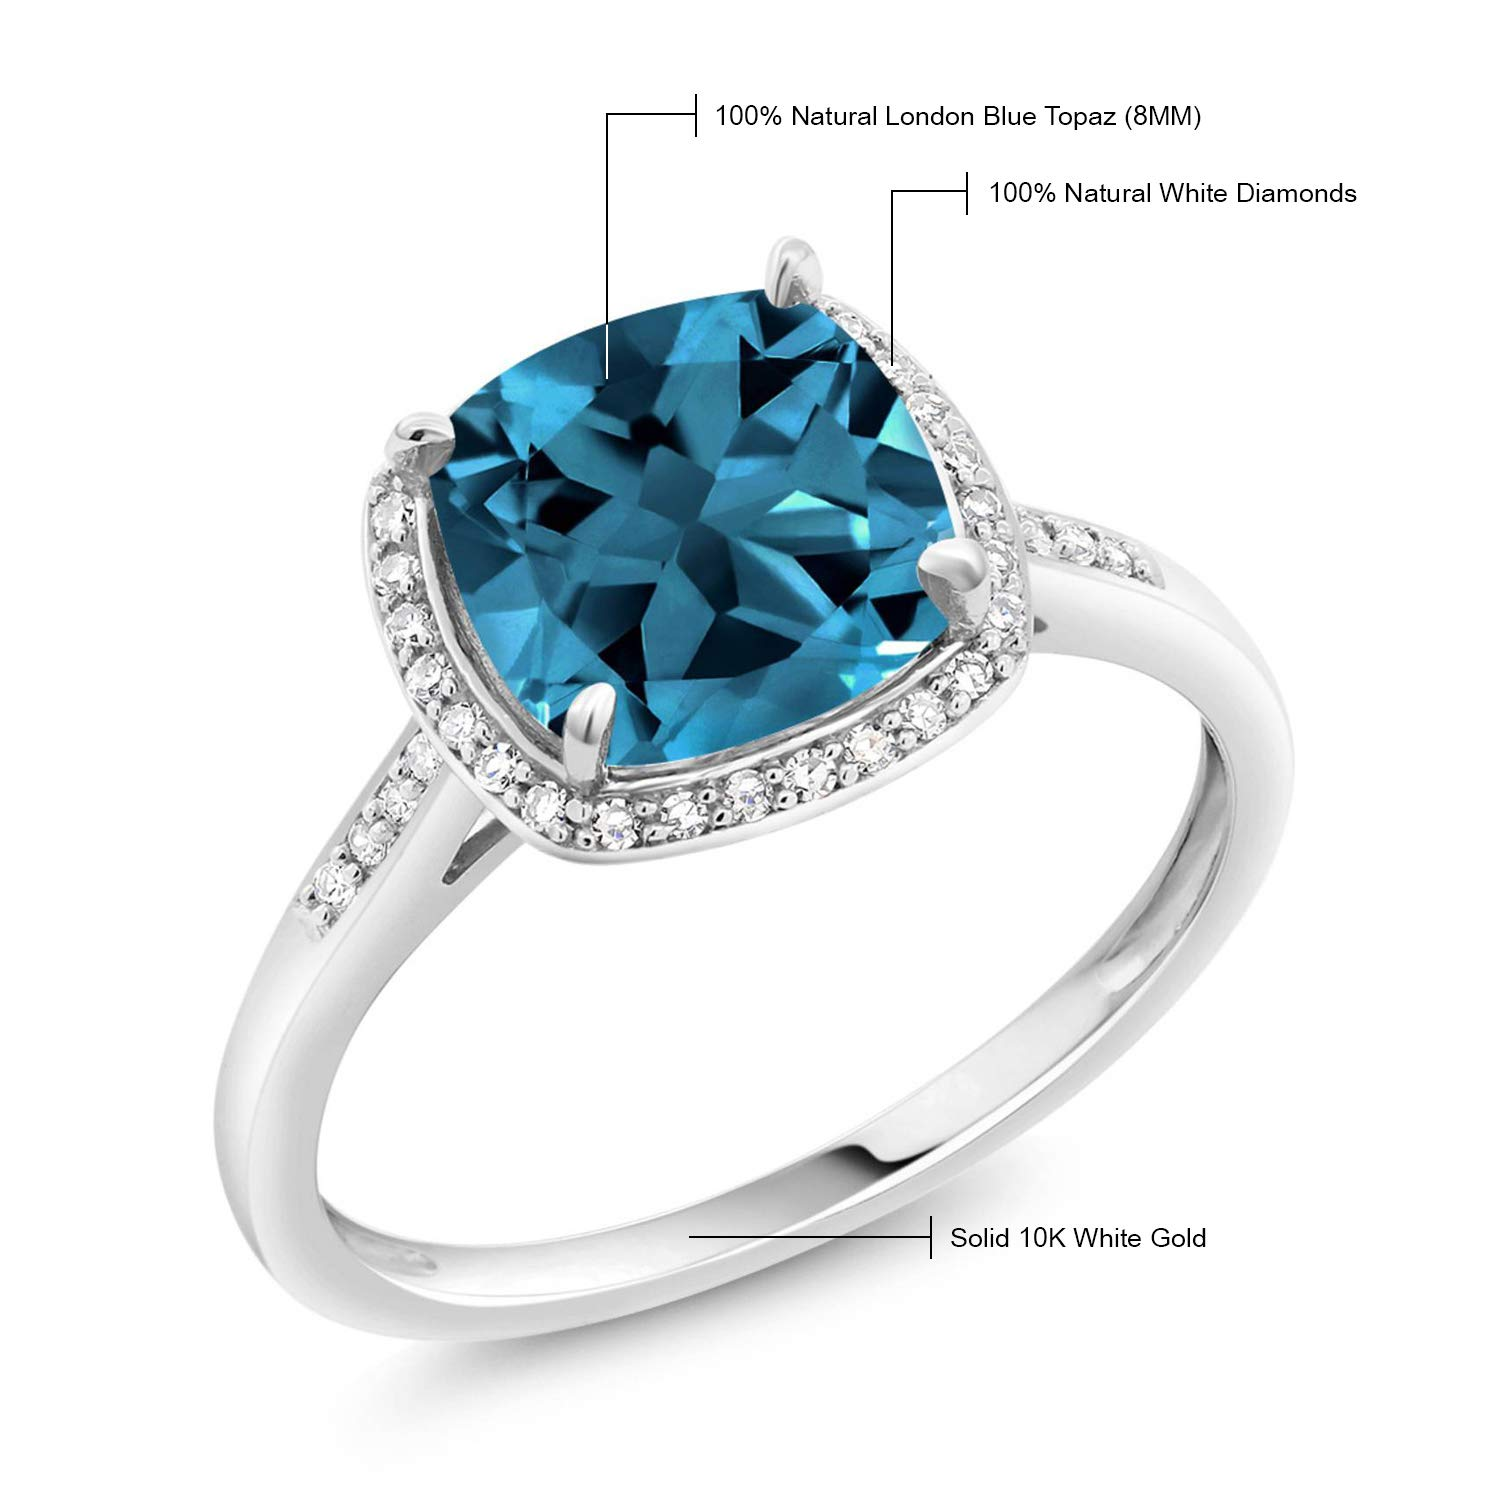 Gem Stone King 10k White Gold London Blue Topaz And Diamond Women S Halo Engagement Ring 2 50 Cttw 8mm Cushion Cut Available 5 6 7 8 9